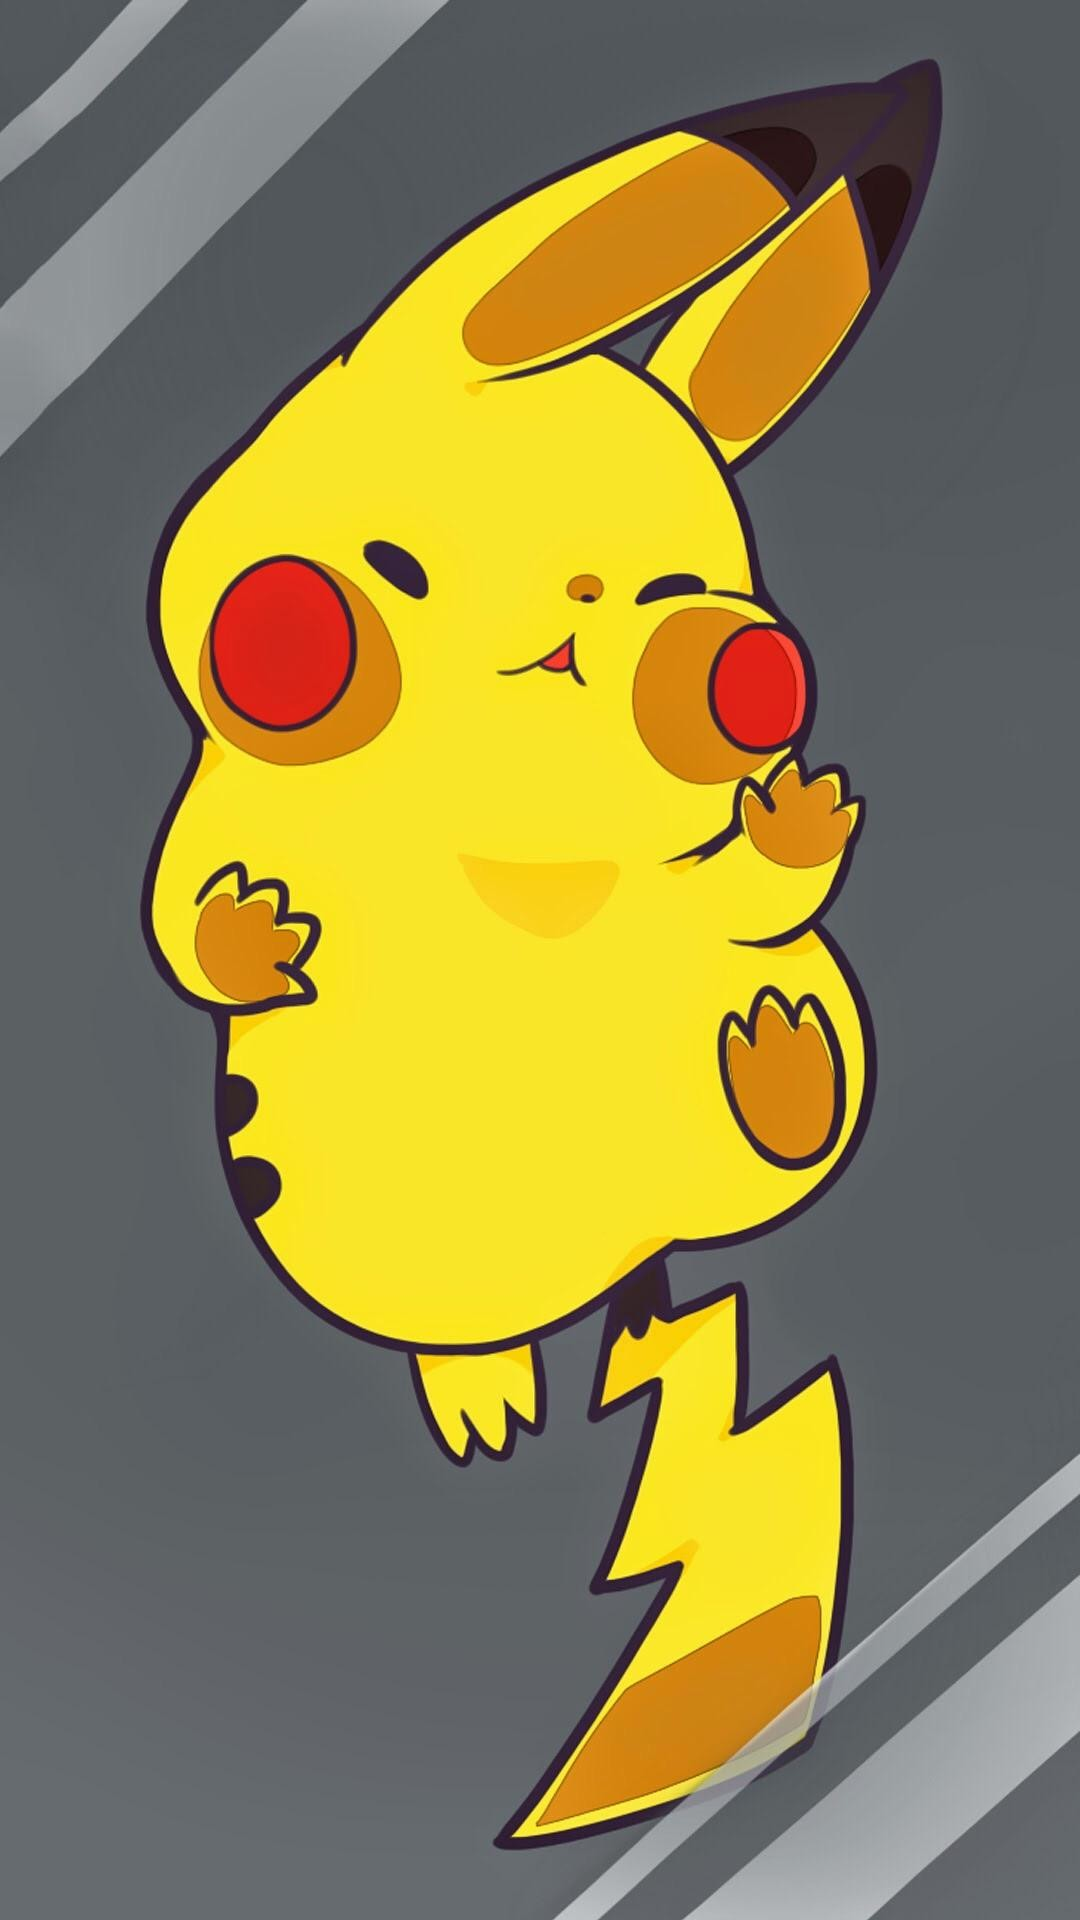 Tap-image-for-more-iPhone-Plus-Pikachu-Pikachu-